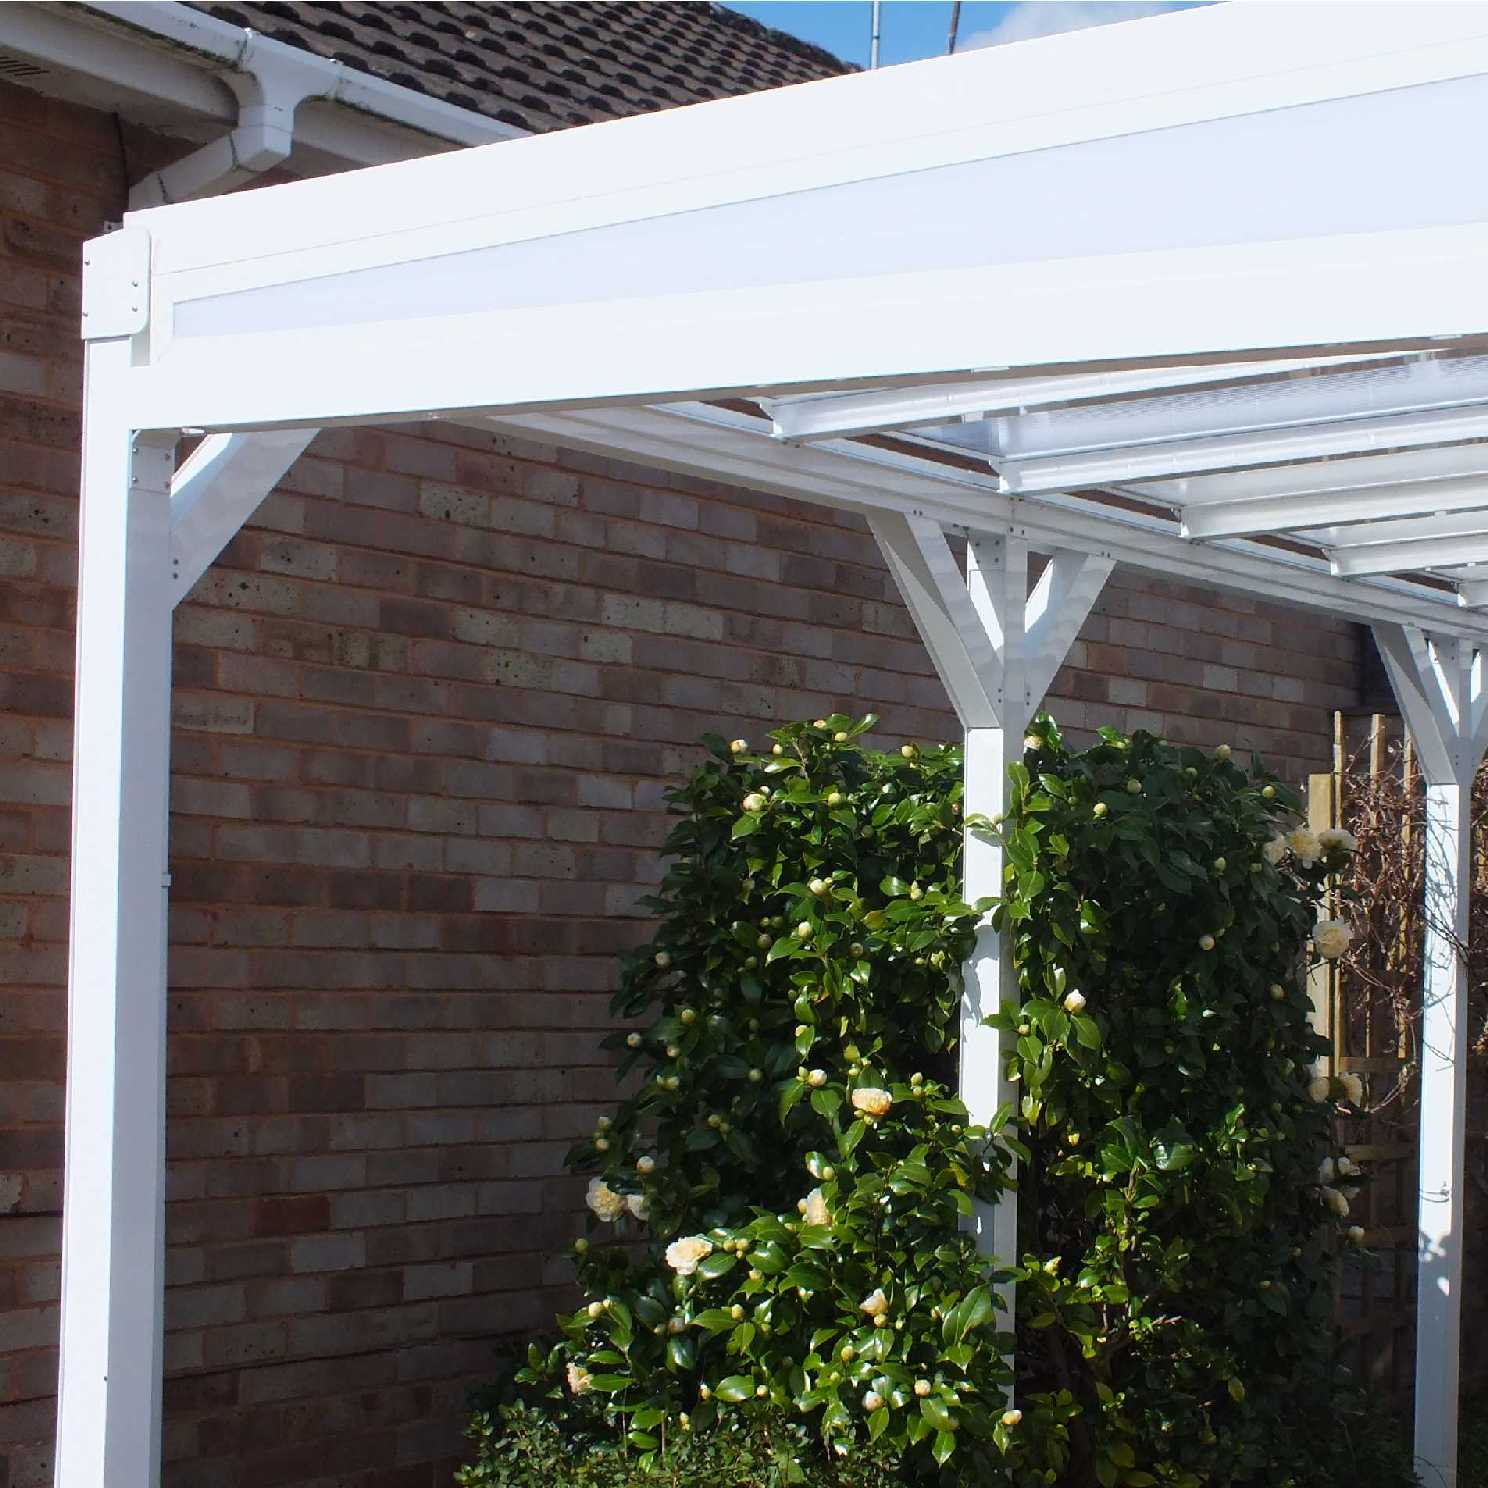 Omega Smart Lean-To Canopy with 16mm Polycarbonate Glazing - 3.1m (W) x 4.5m (P), (2) Supporting Posts from Omega Build